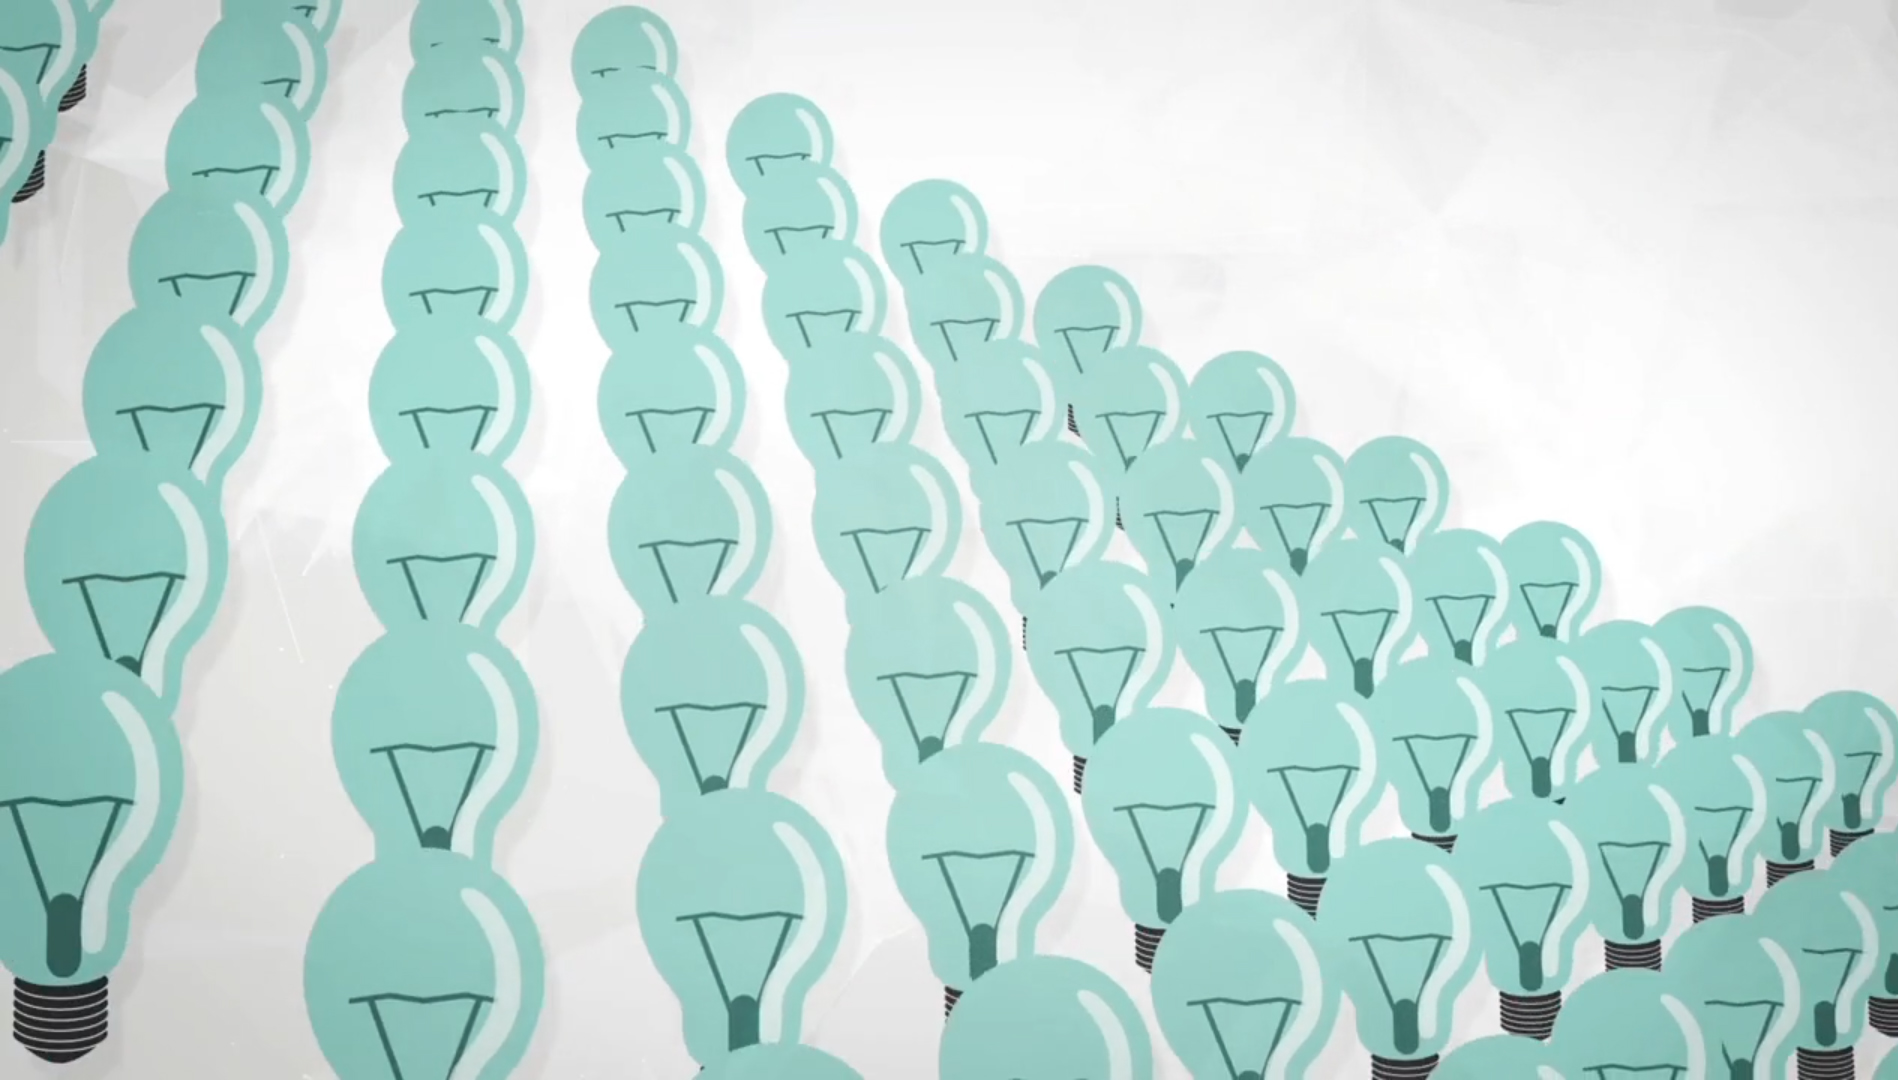 Illustrative image of light bulbs. Image from 00:50 video 'Copyright & Creativity' by copyrightuser.org  https://www.copyrightuser.org/create/creative-process/copyright-and-creativity/ released under CC-BY 3.0  license.